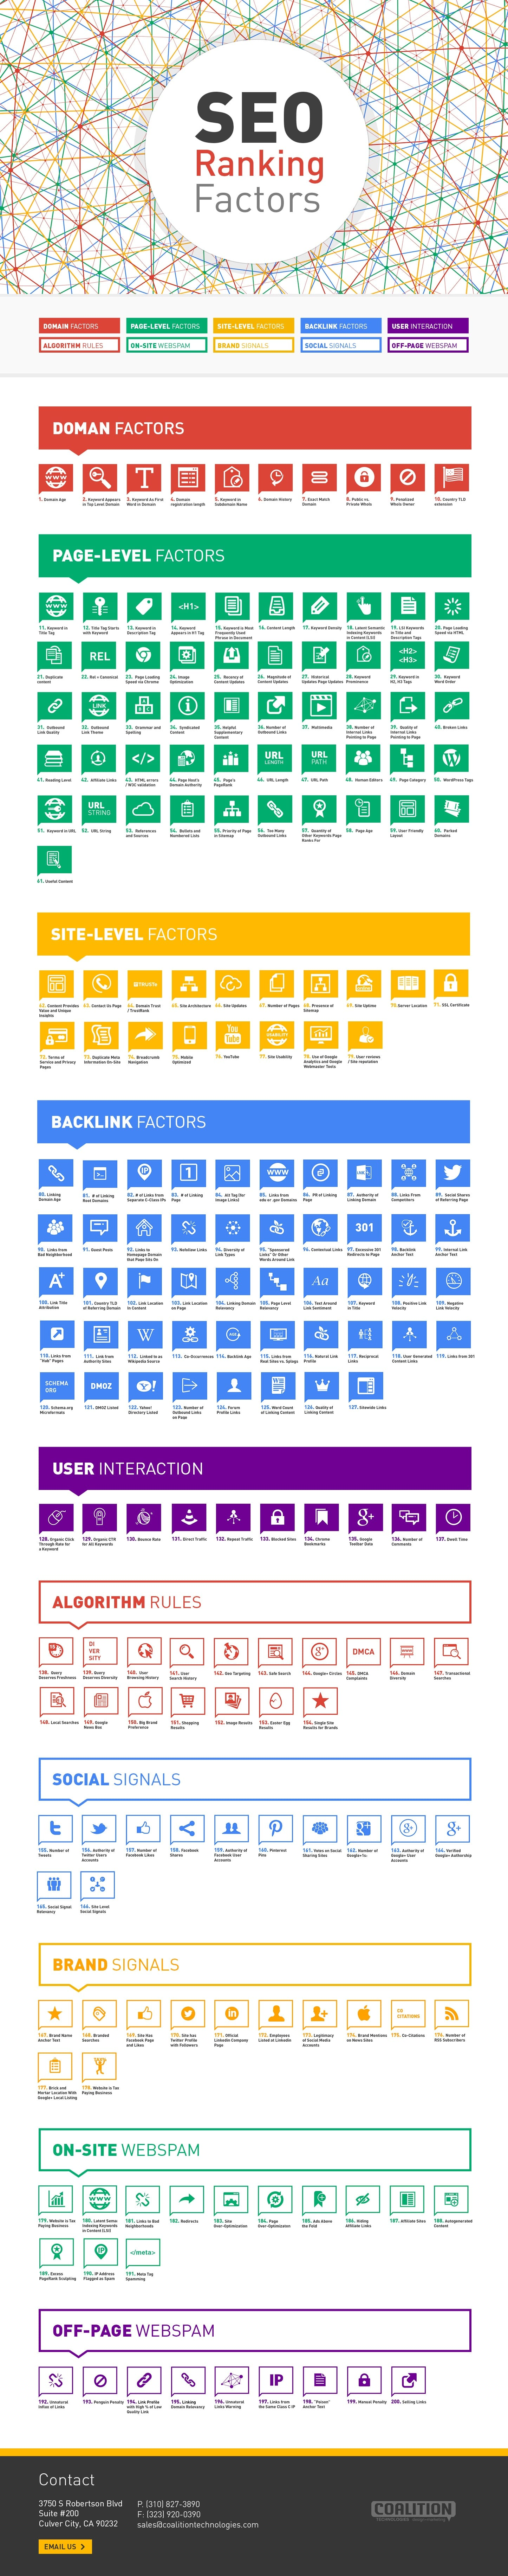 Top 200 Most Important SEO Ranking Factors [Infographic]